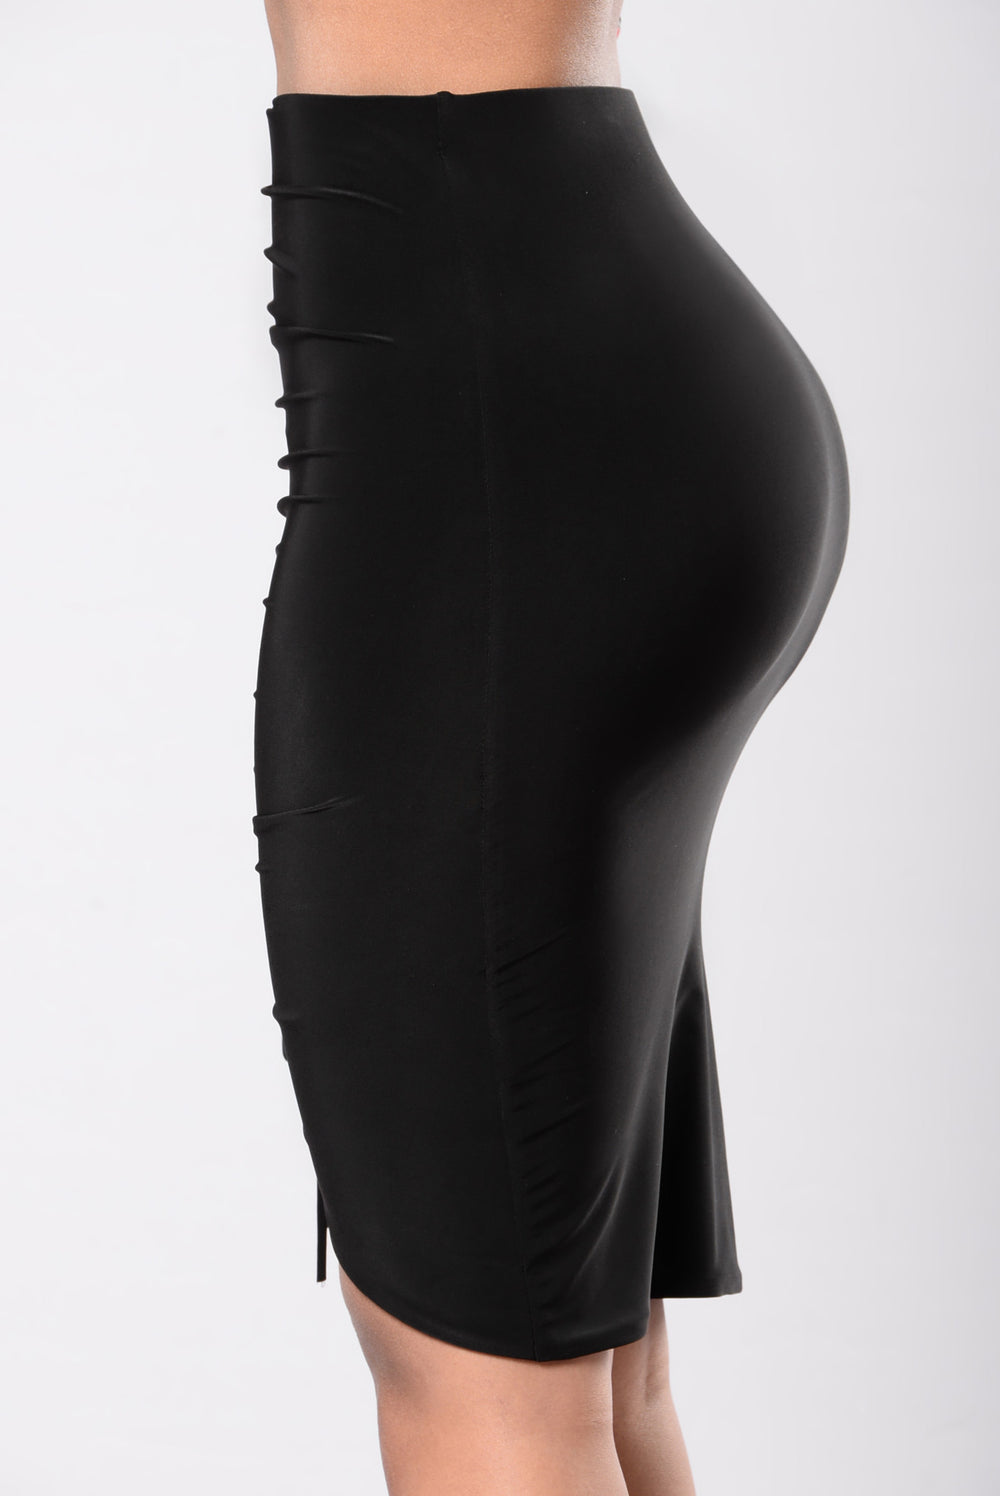 Standing Ovation Skirt - Black